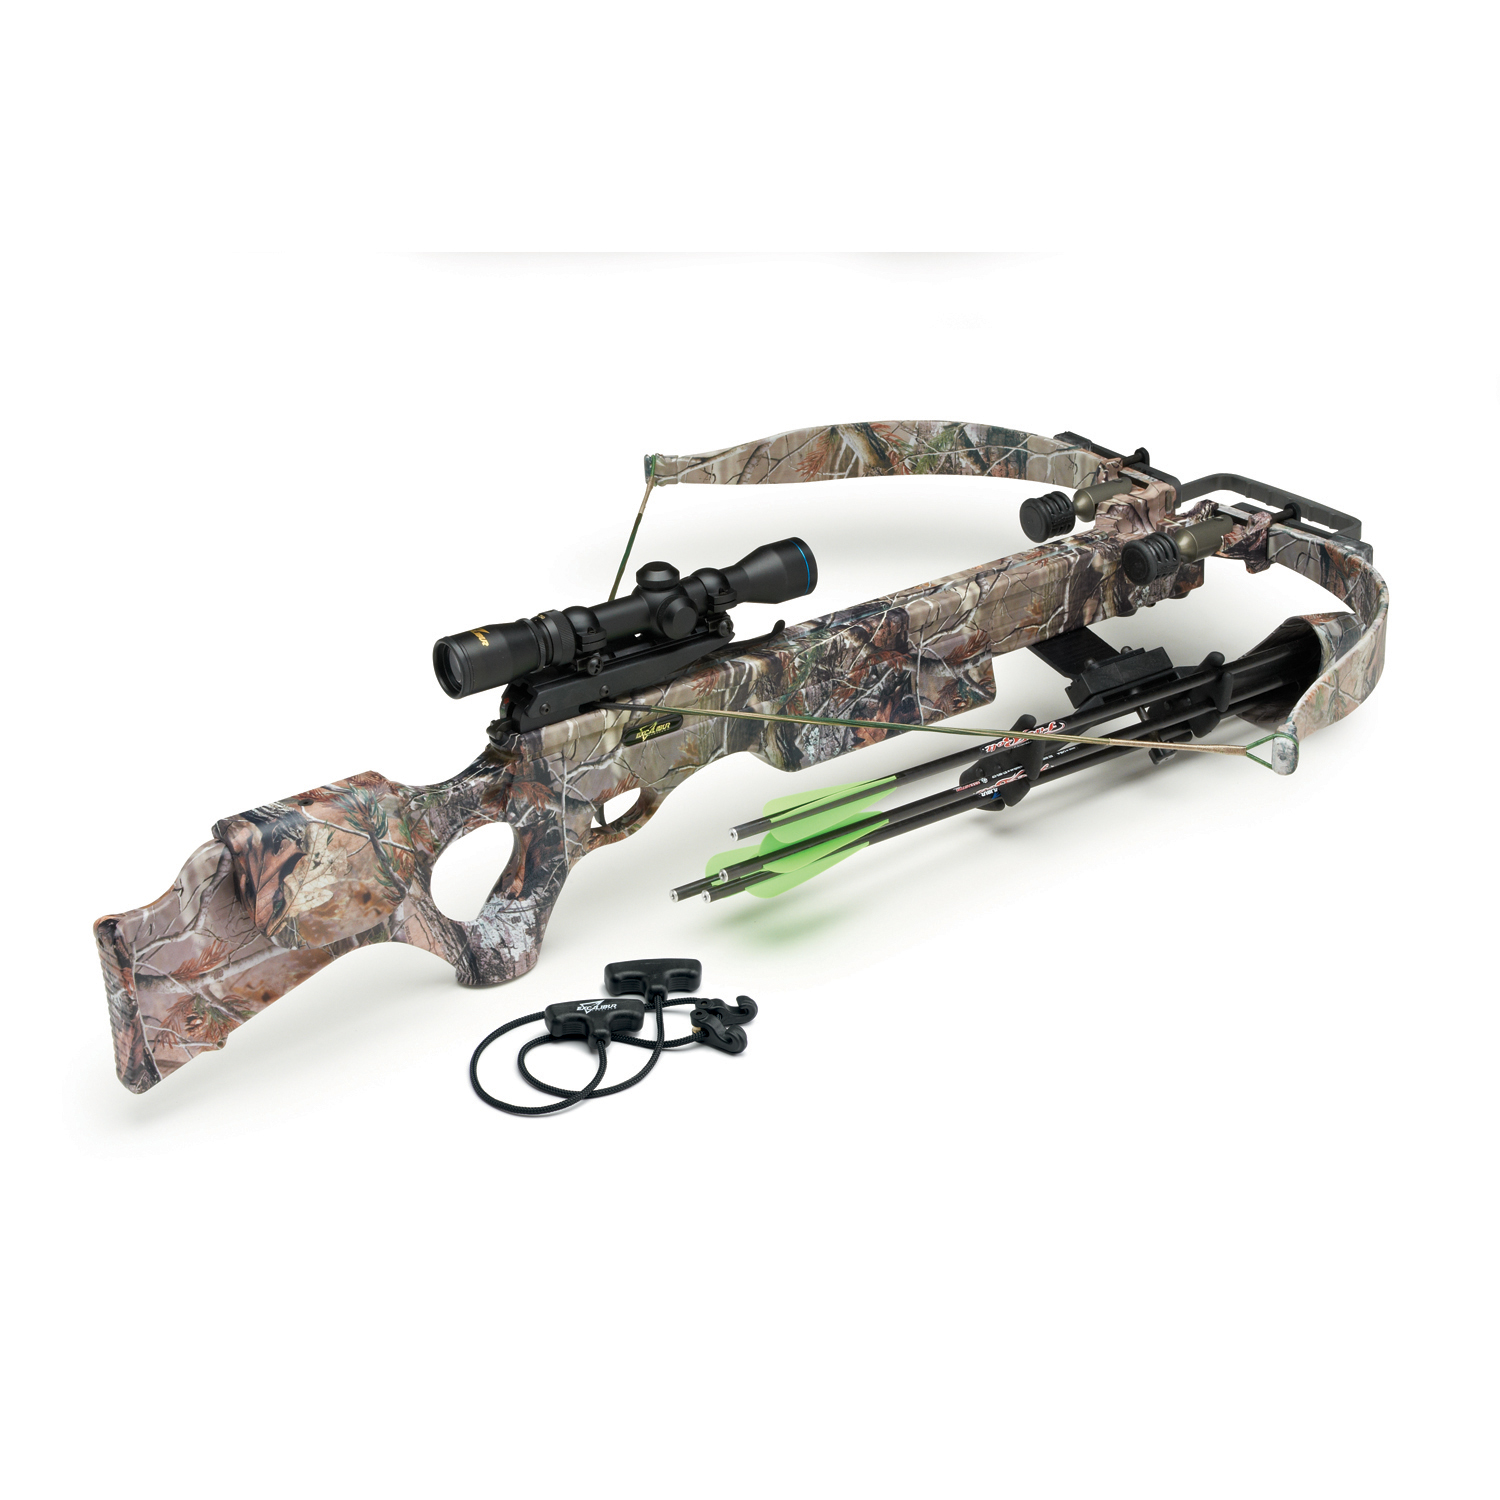 Excalibur Equinox Vari-Zone Lite Stuff Crossbow Package